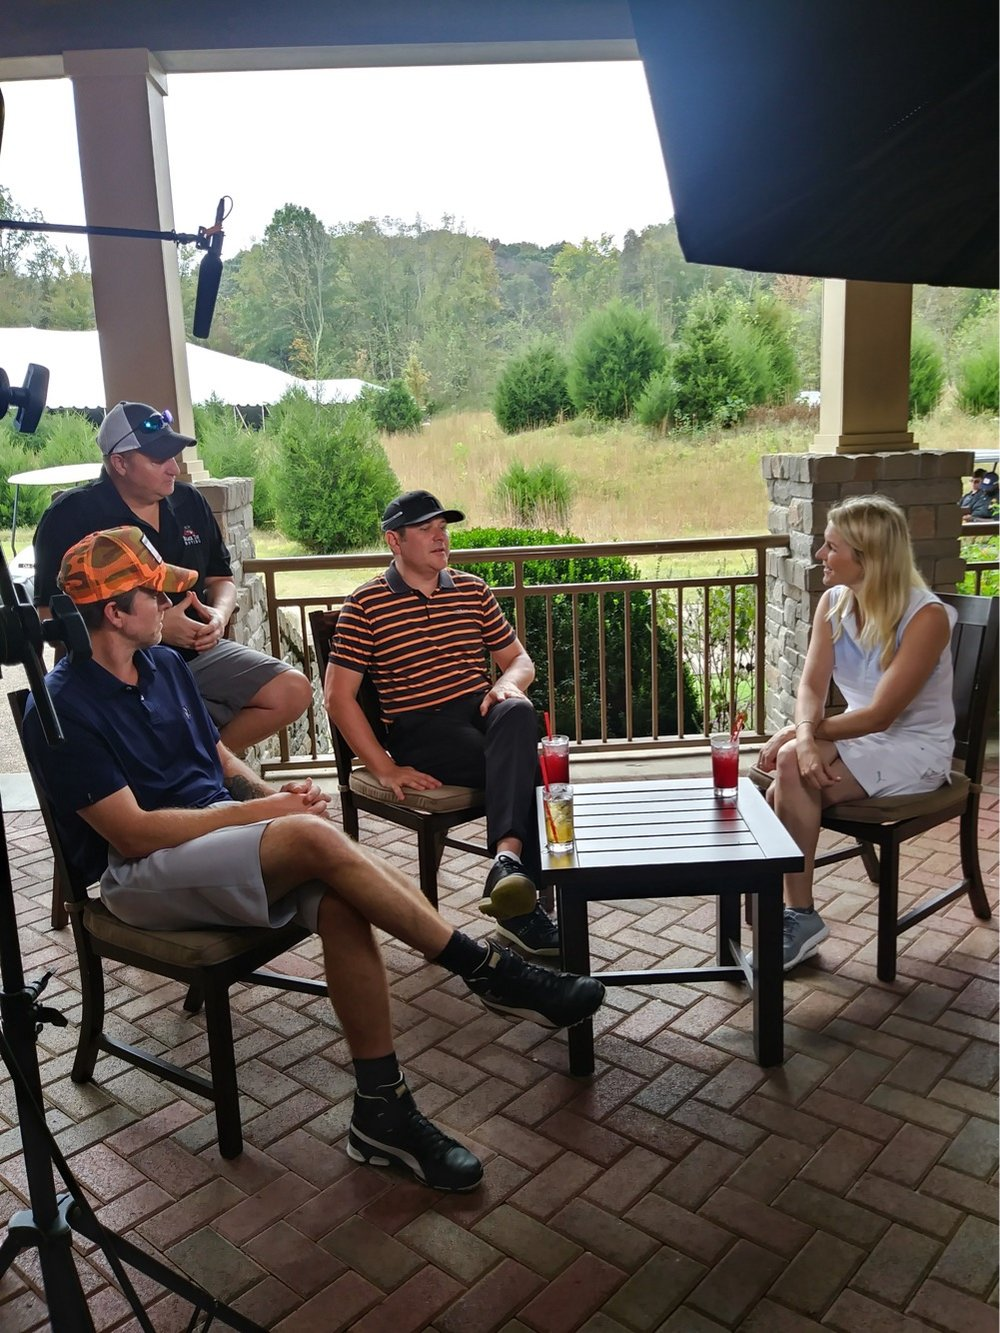 Sports Illustrated: A Round with Rascal Flatts